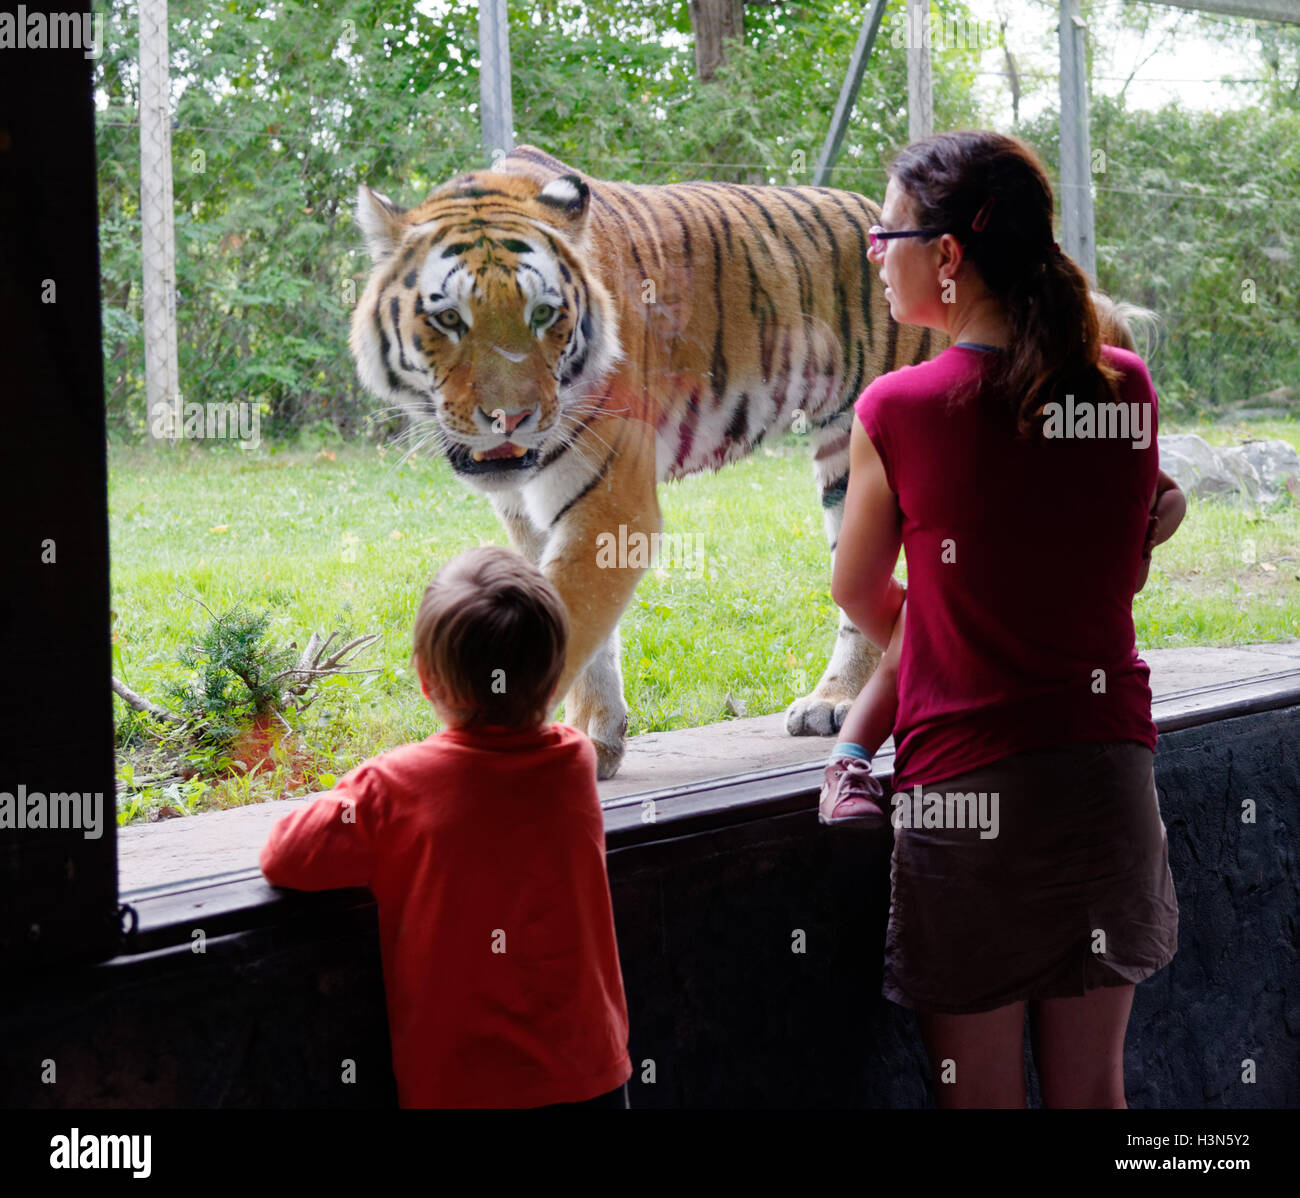 The Siberian tiger in Granby Zoo looking at people behind the glass, Quebec, Canada - Stock Image